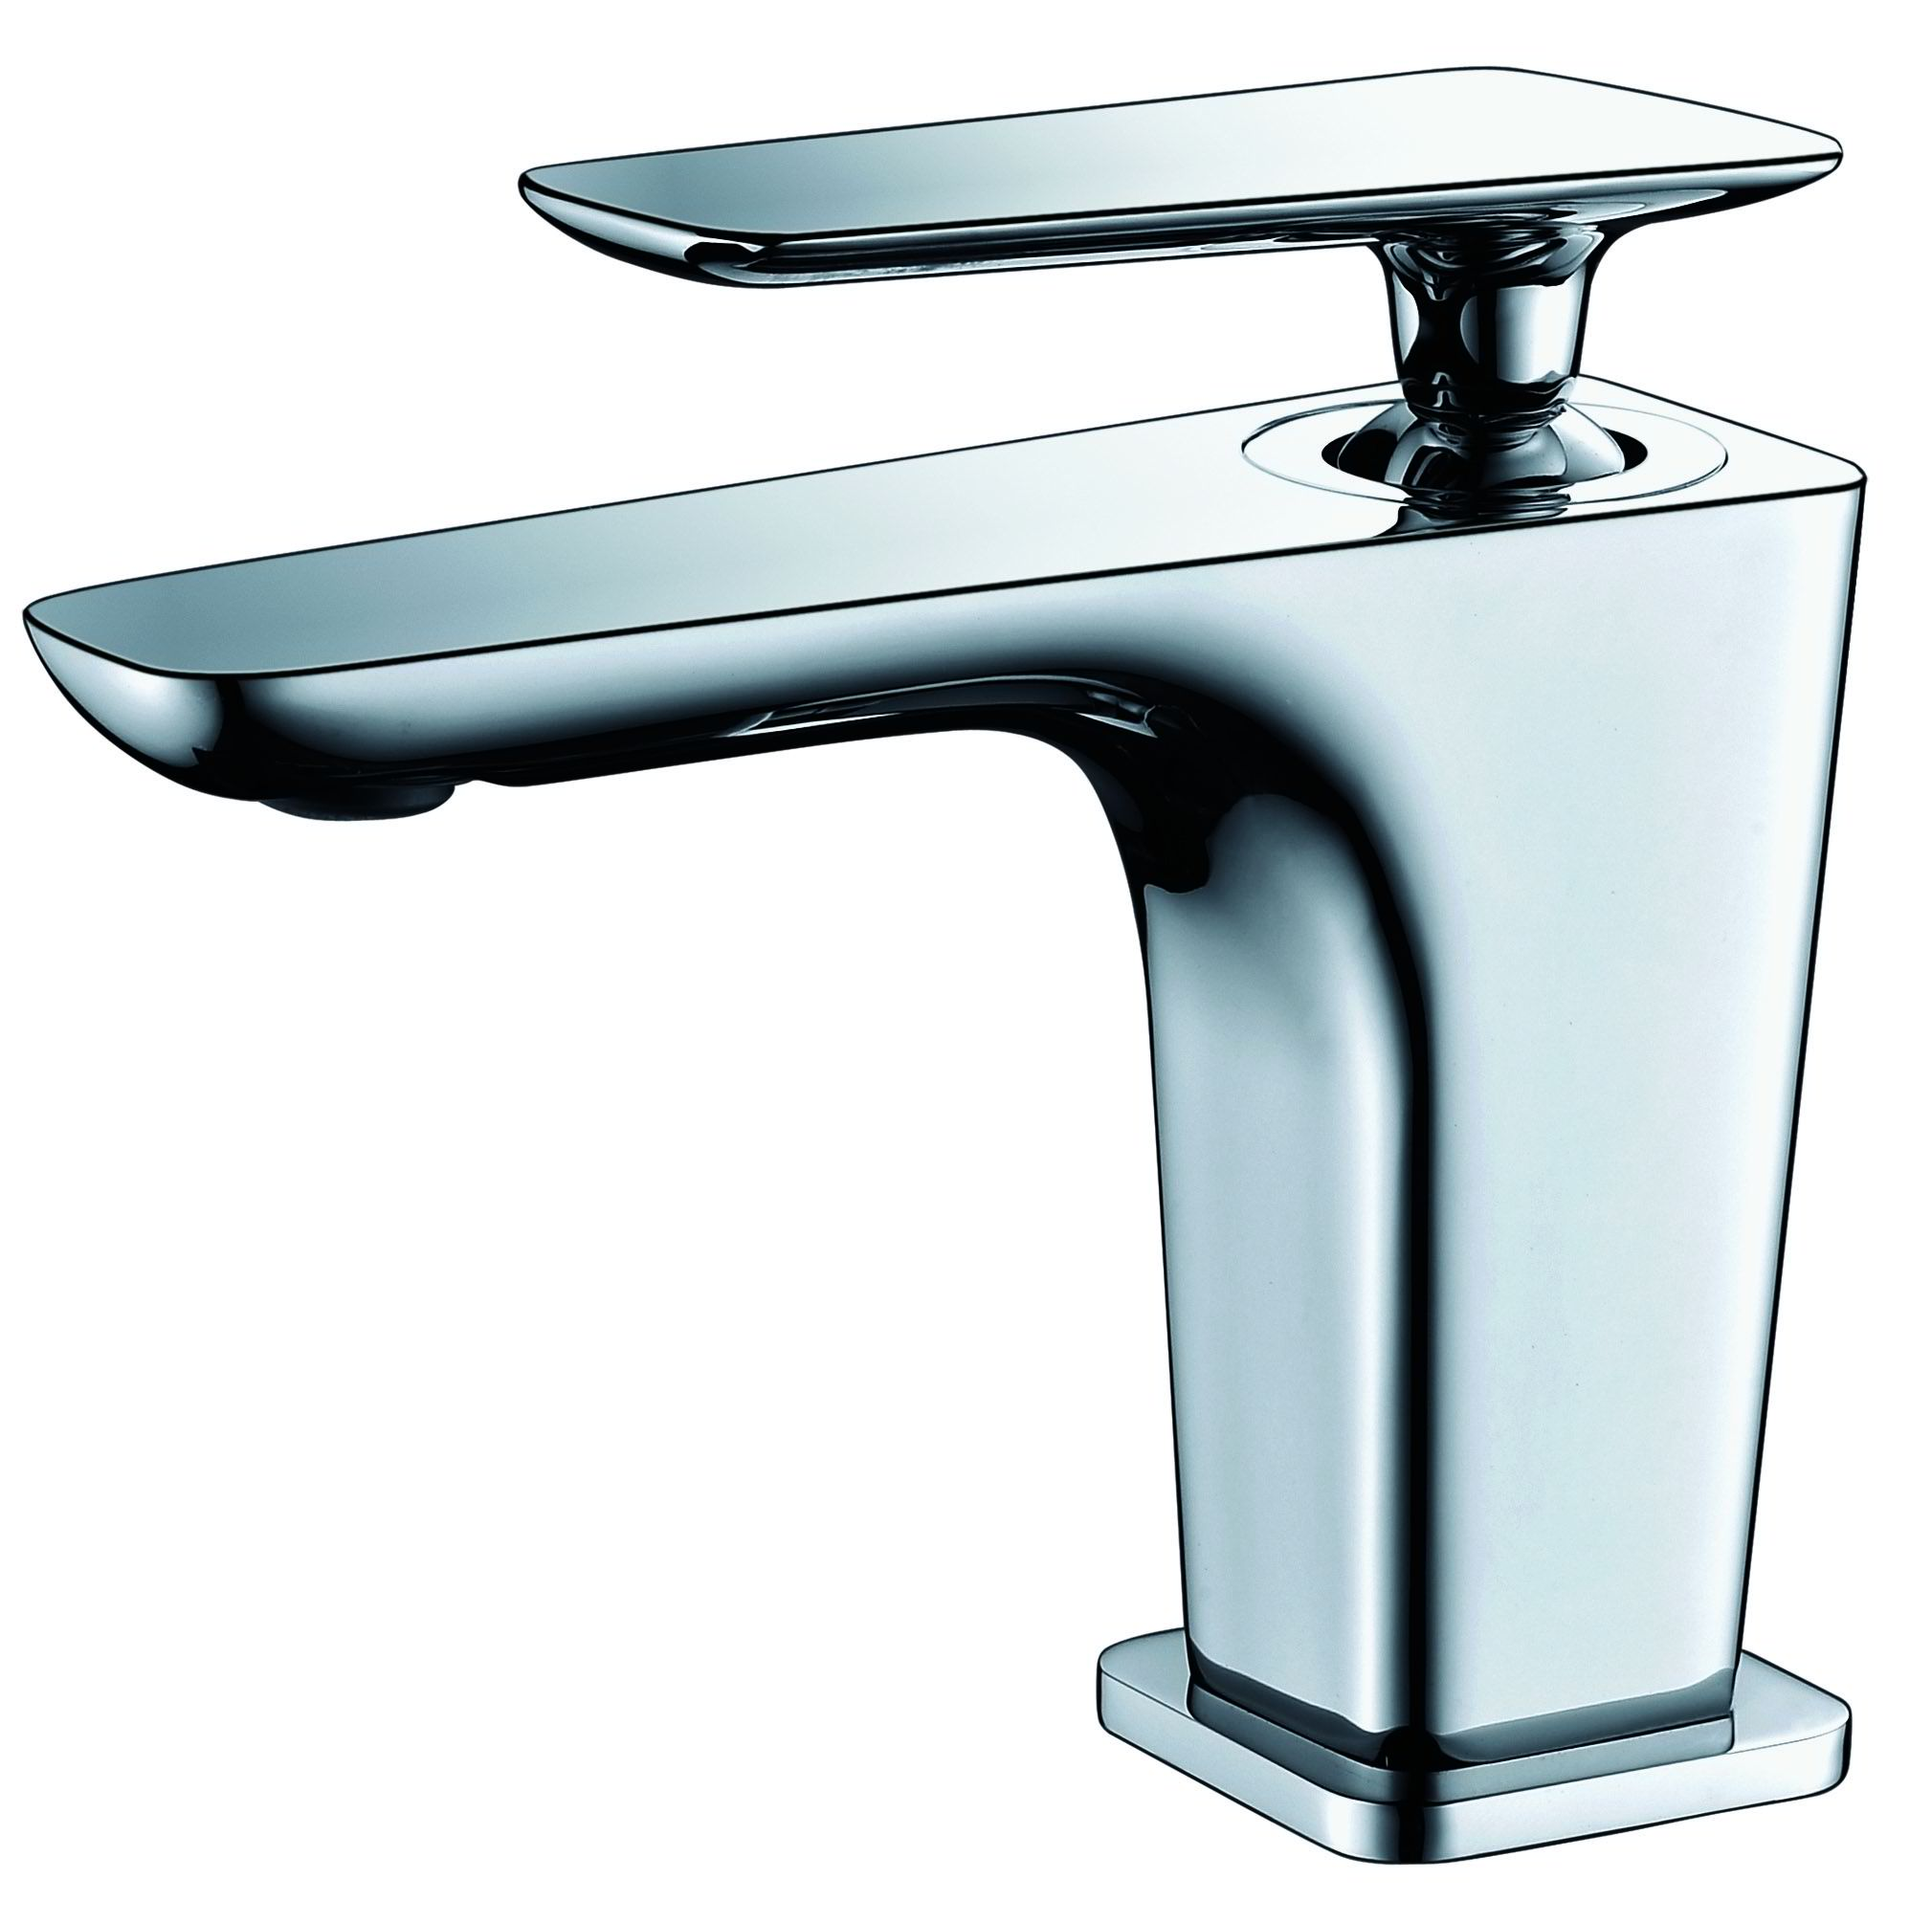 ALFI Brand AB1779 Brushed Nickel or Polished Chrome Single Hole Modern Bathroom Faucet